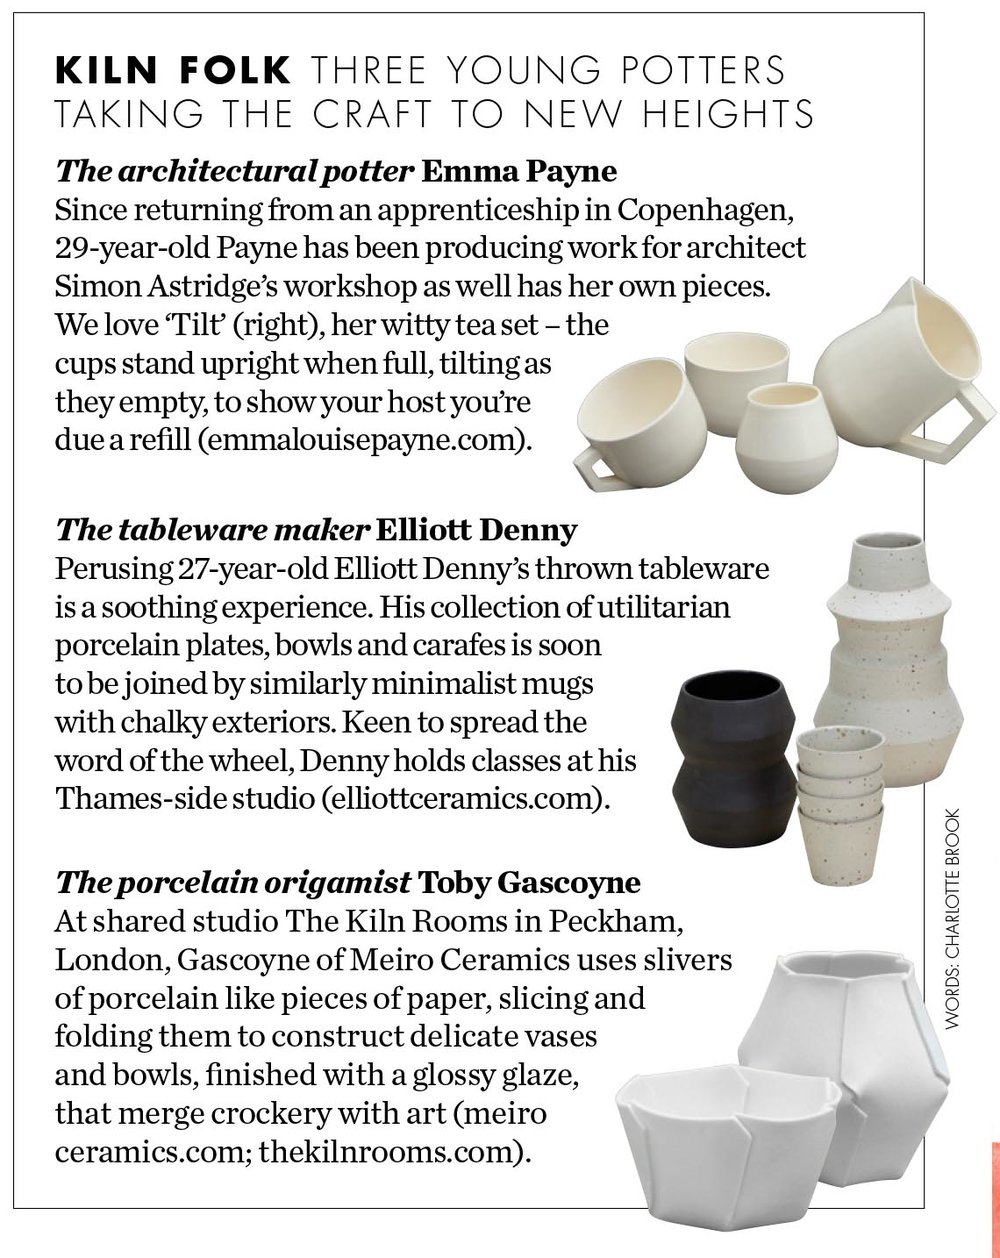 ED Oct 17 - Brit ceramics 03.jpg